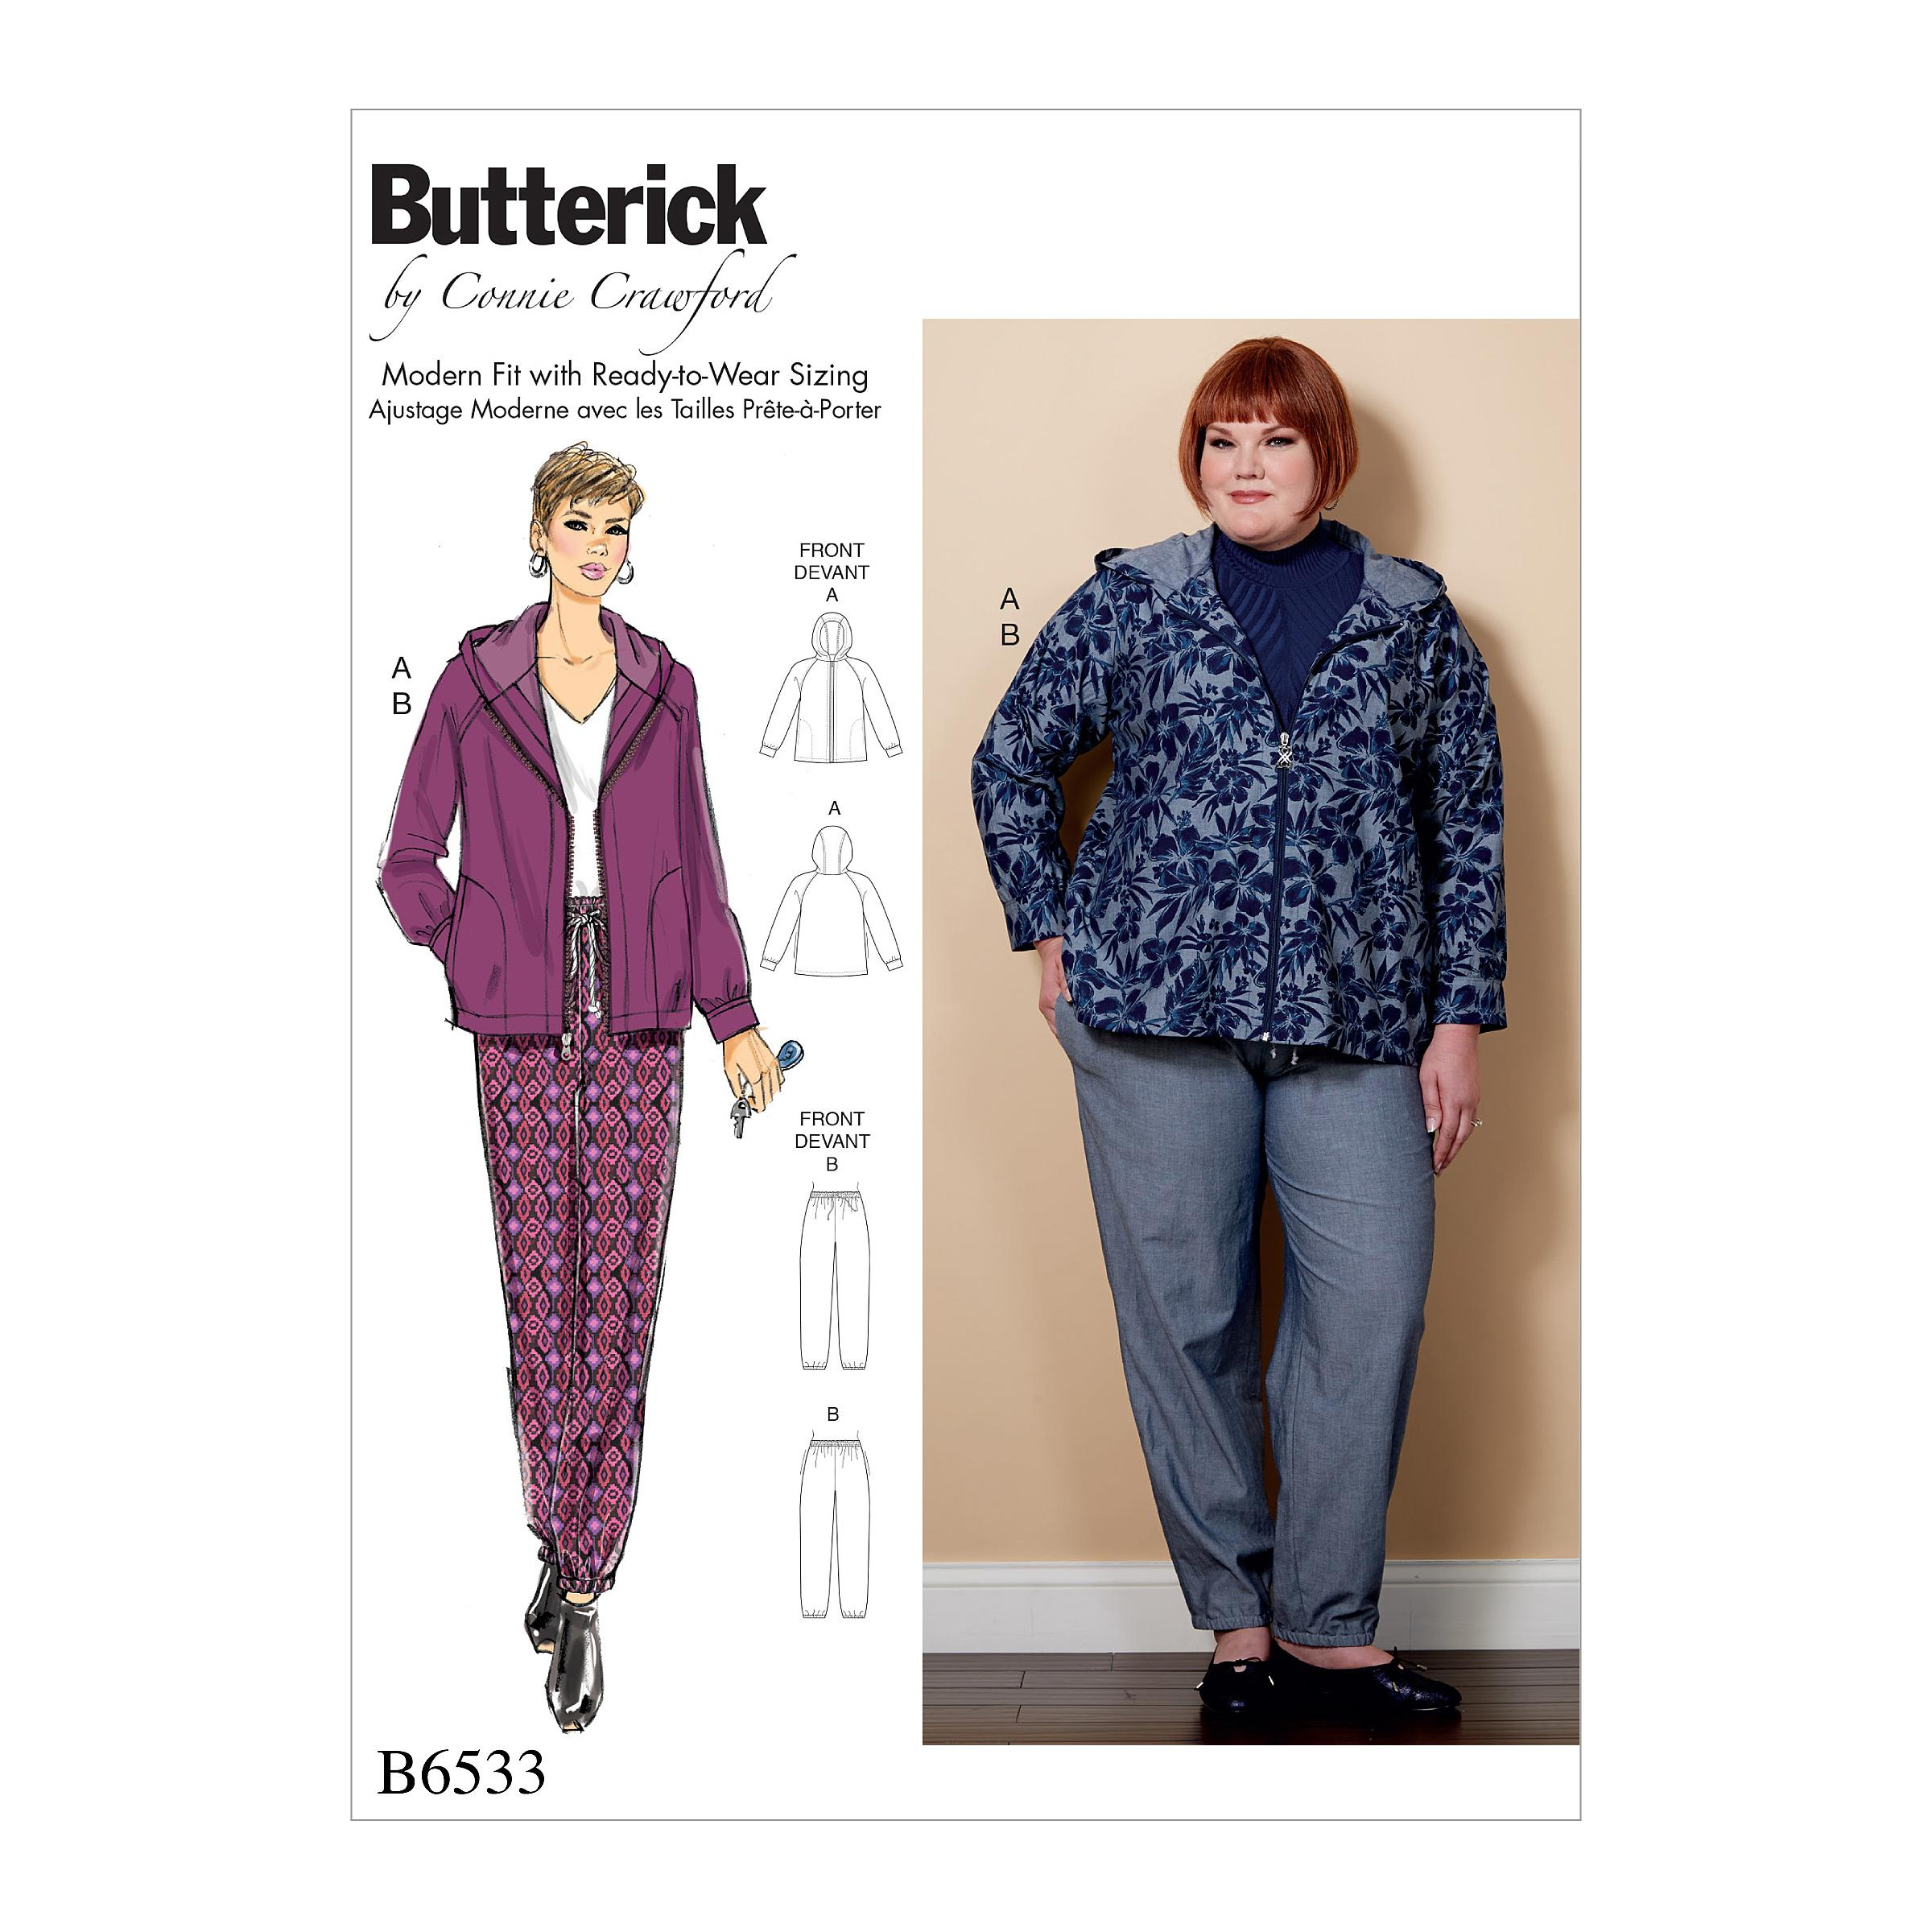 Butterick B6533 Miss/Women's Jacket and Pants